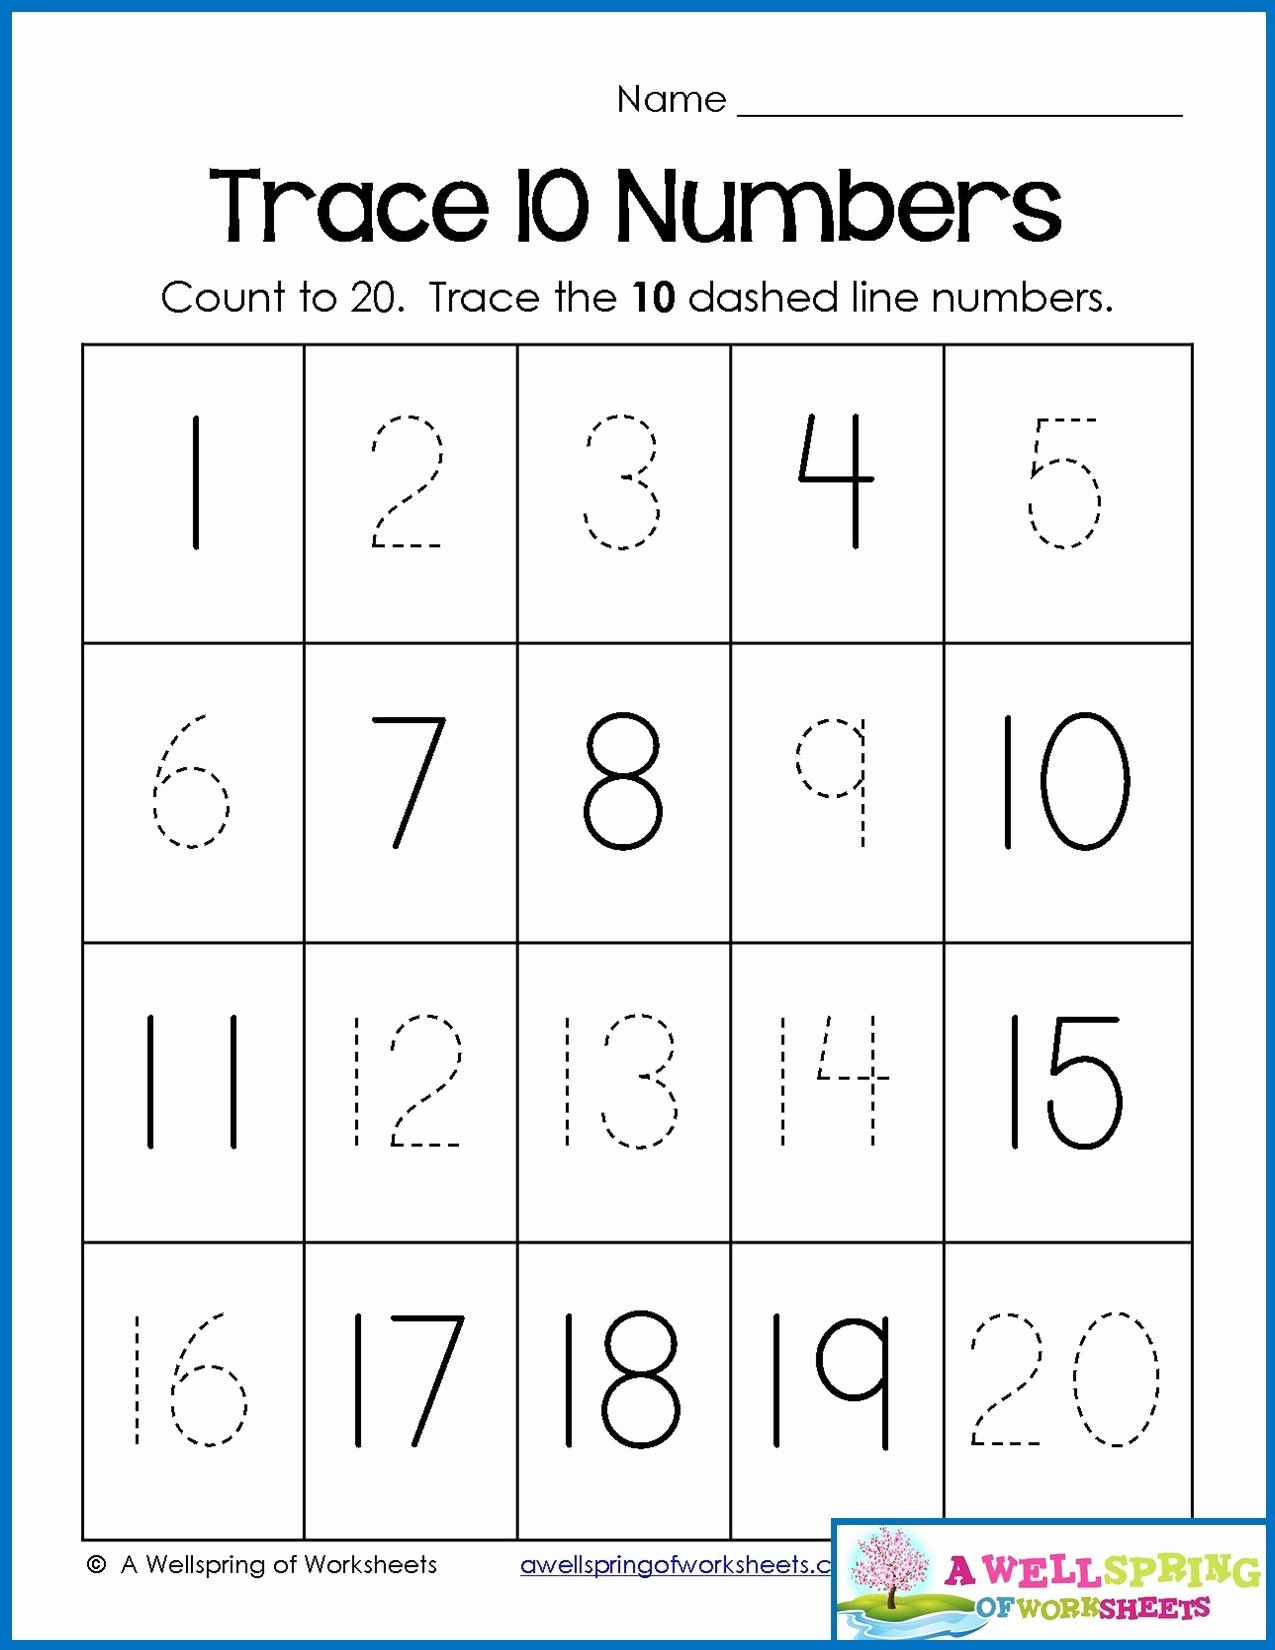 Counting Worksheets for Preschoolers New Math Worksheet 56 Remarkable Counting Worksheets for